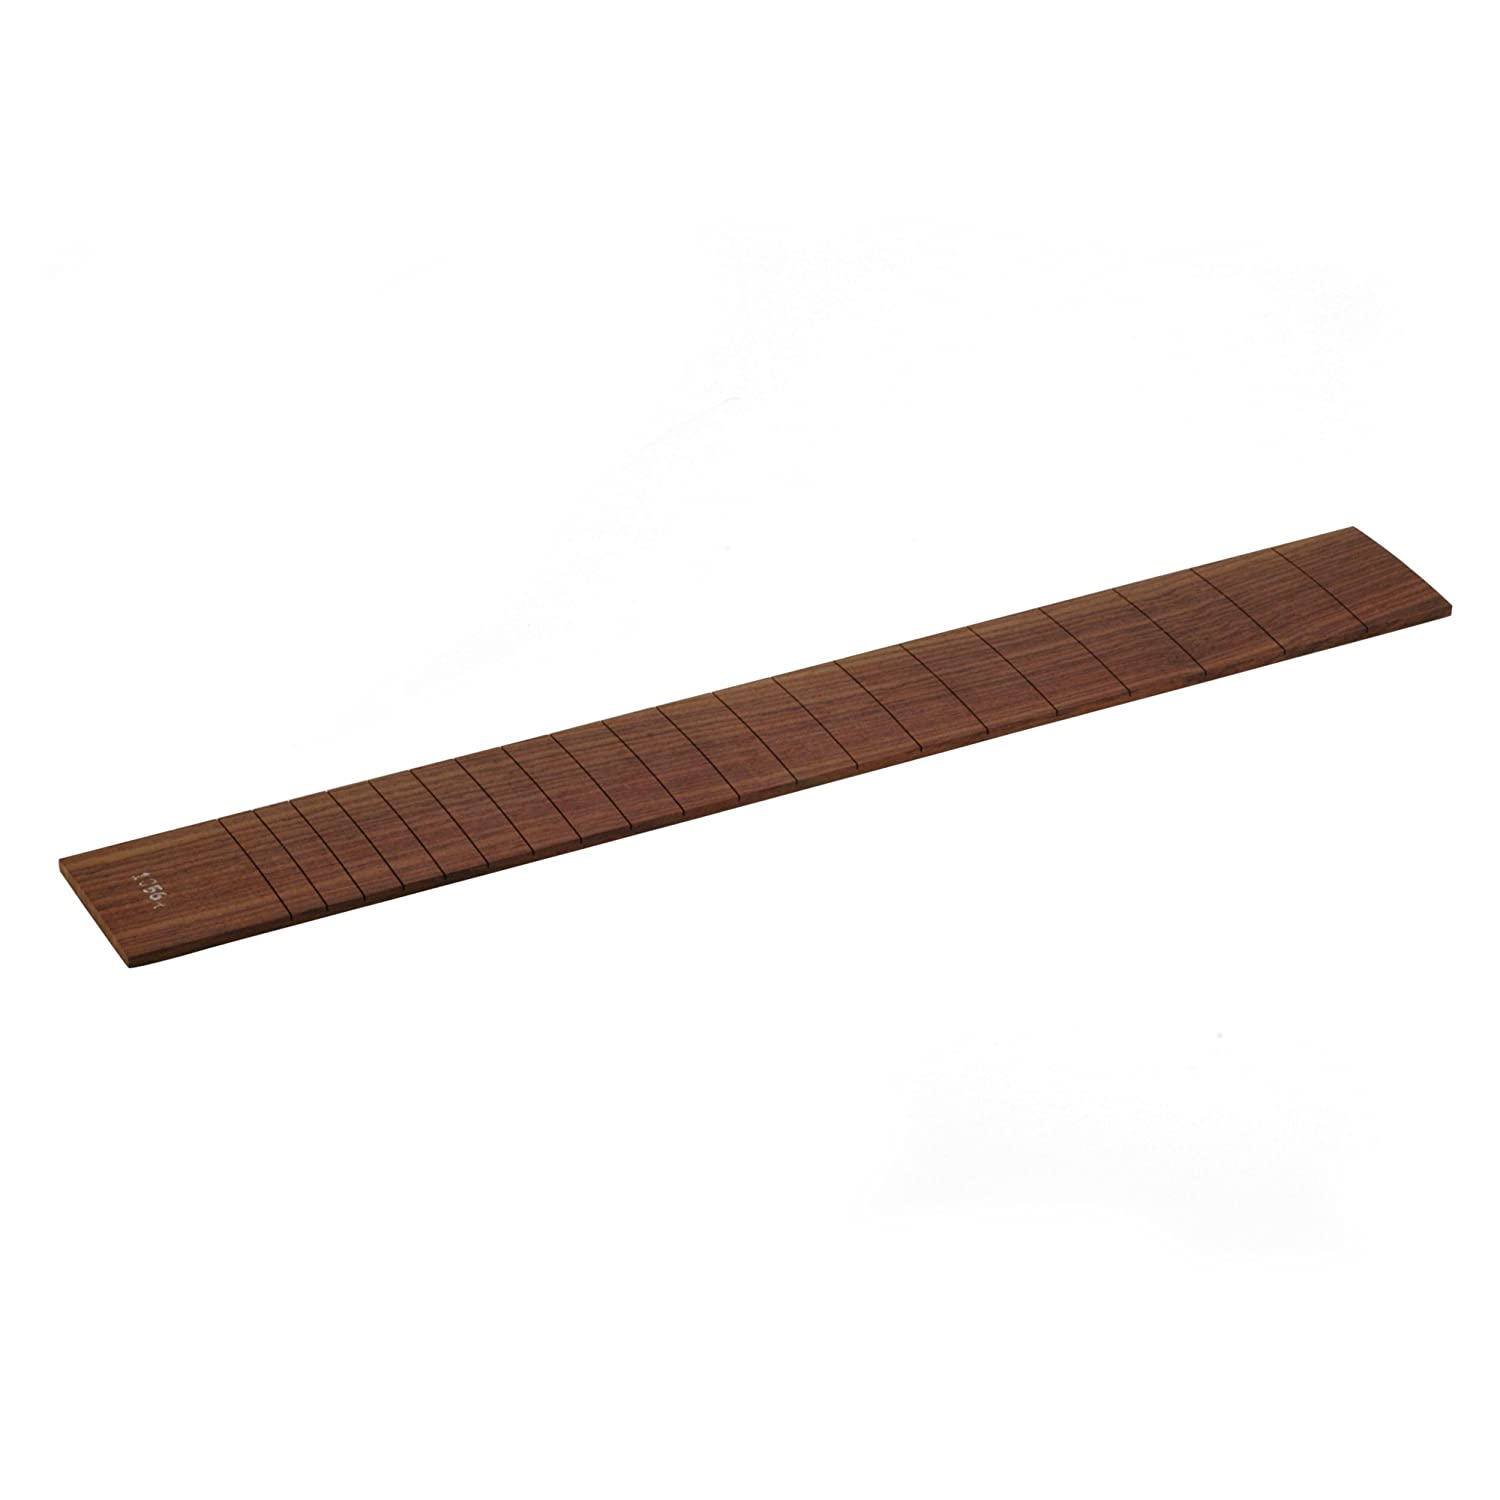 StewMac Slotted Fingerboard for Martin Guitar, Rosewood #AN1056-R